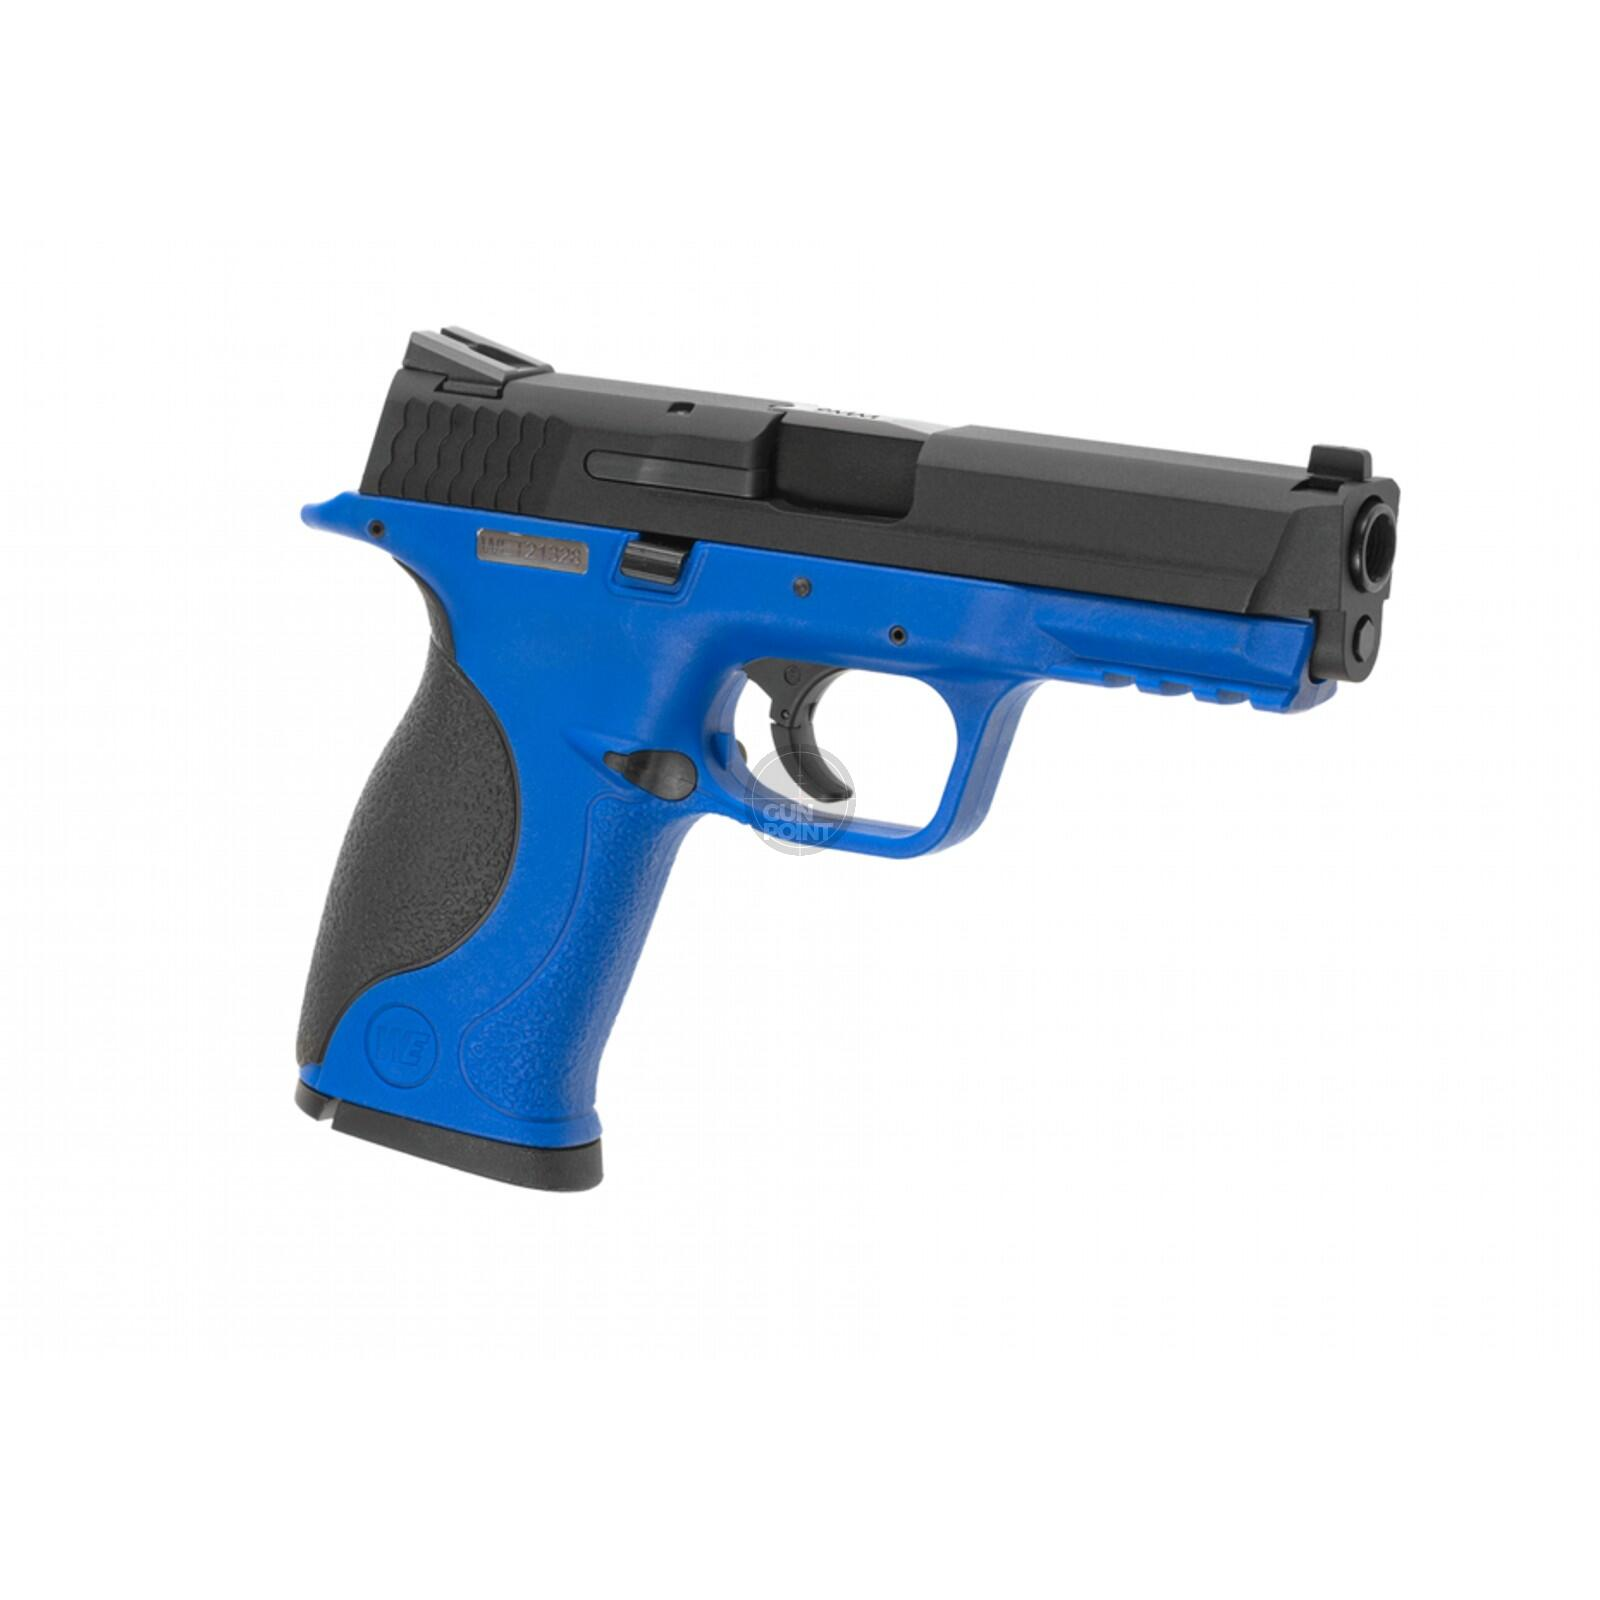 Softair - Pistole - WE - M&P Metal Version GBB blue - ab 18, über 0,5 Joule